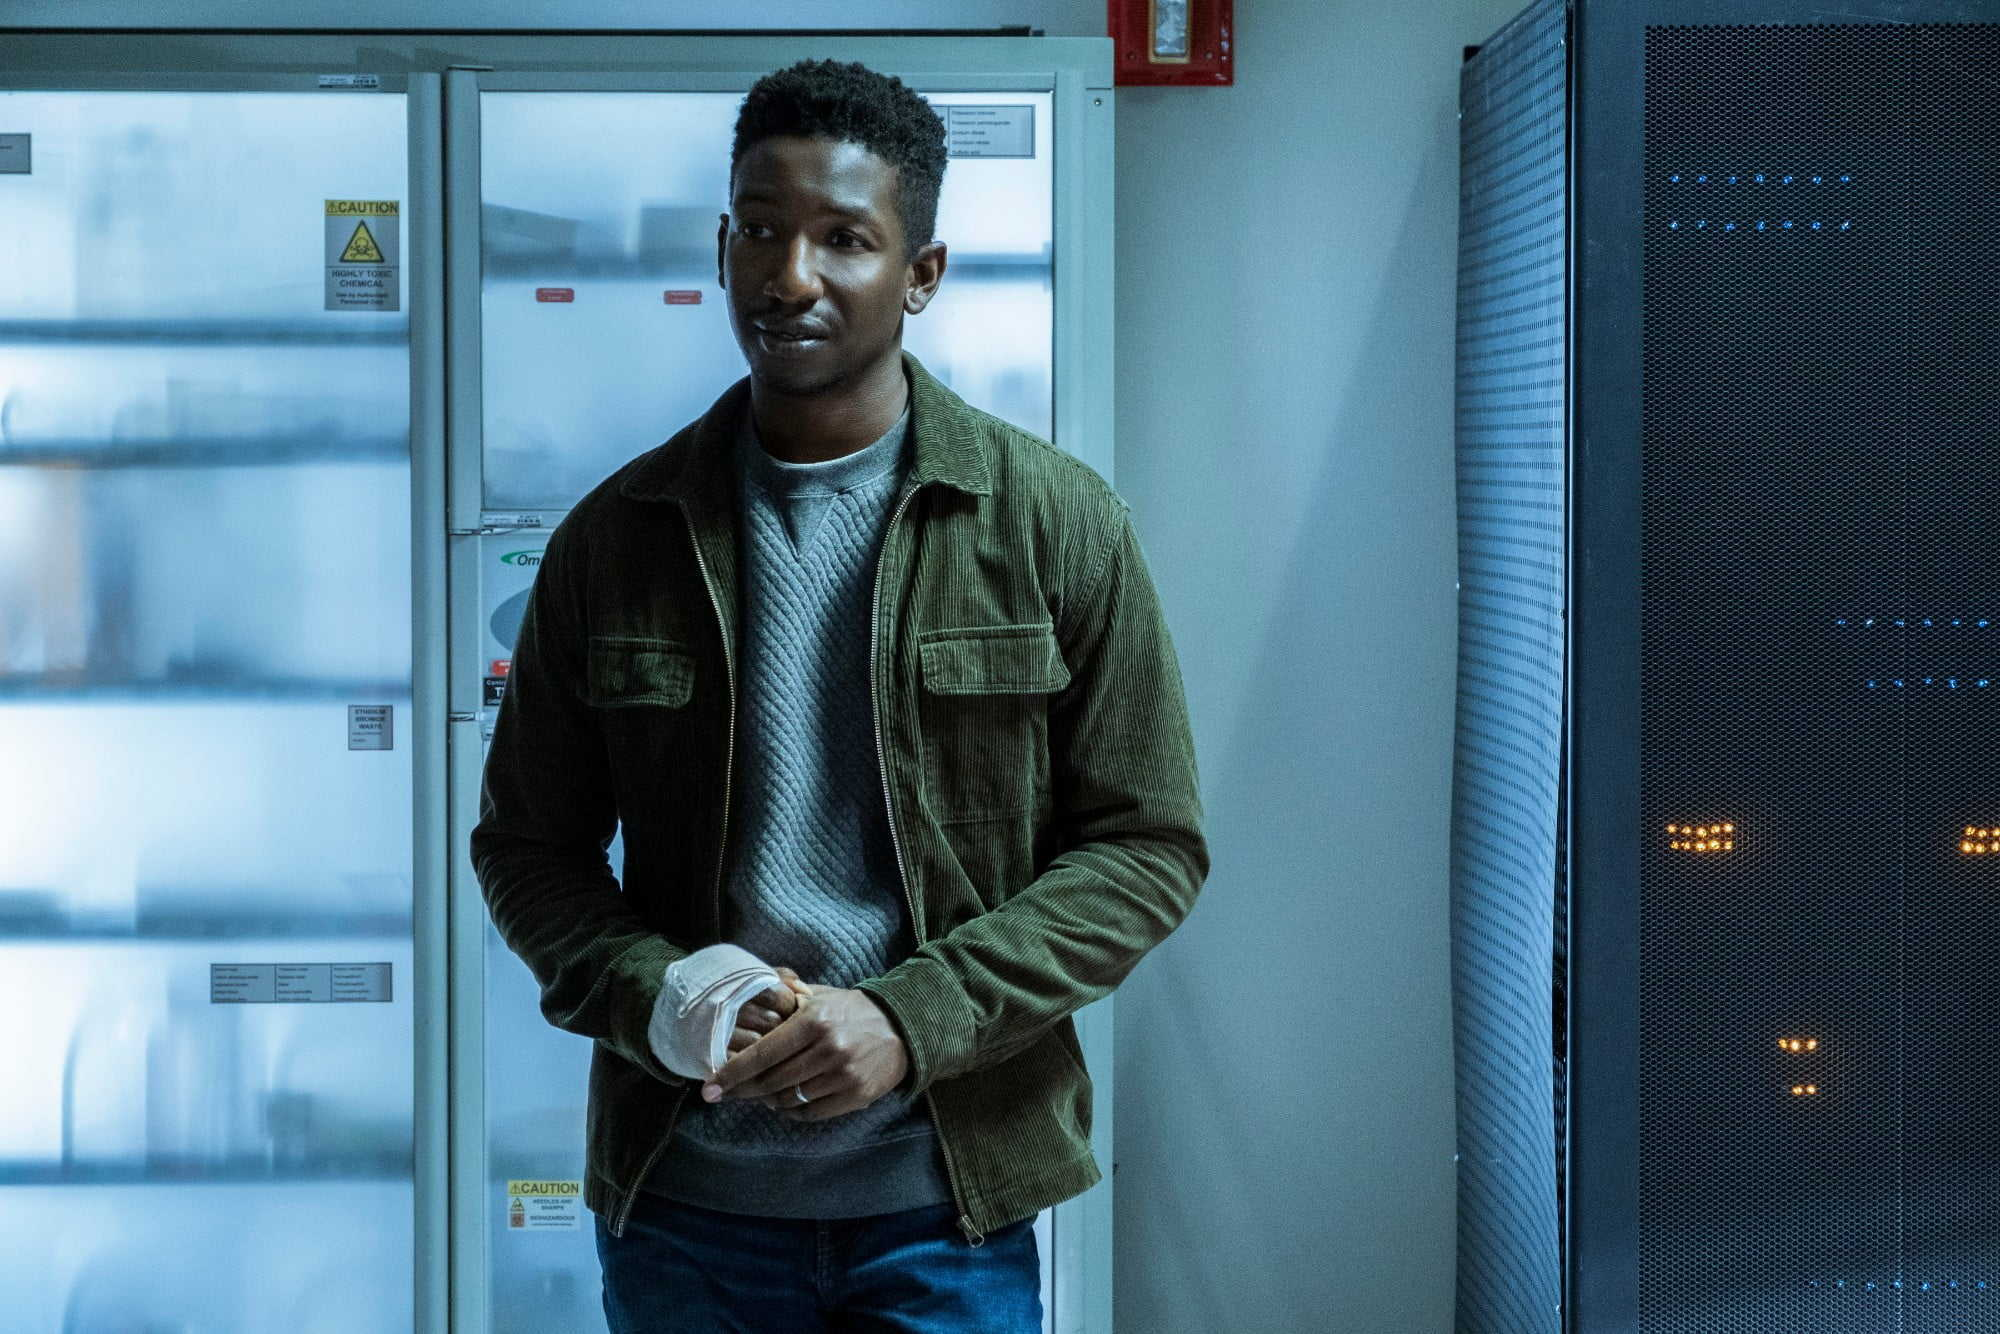 The amnesiac Nolan Wright (Mamoudou Athie) in Black Box (2020)